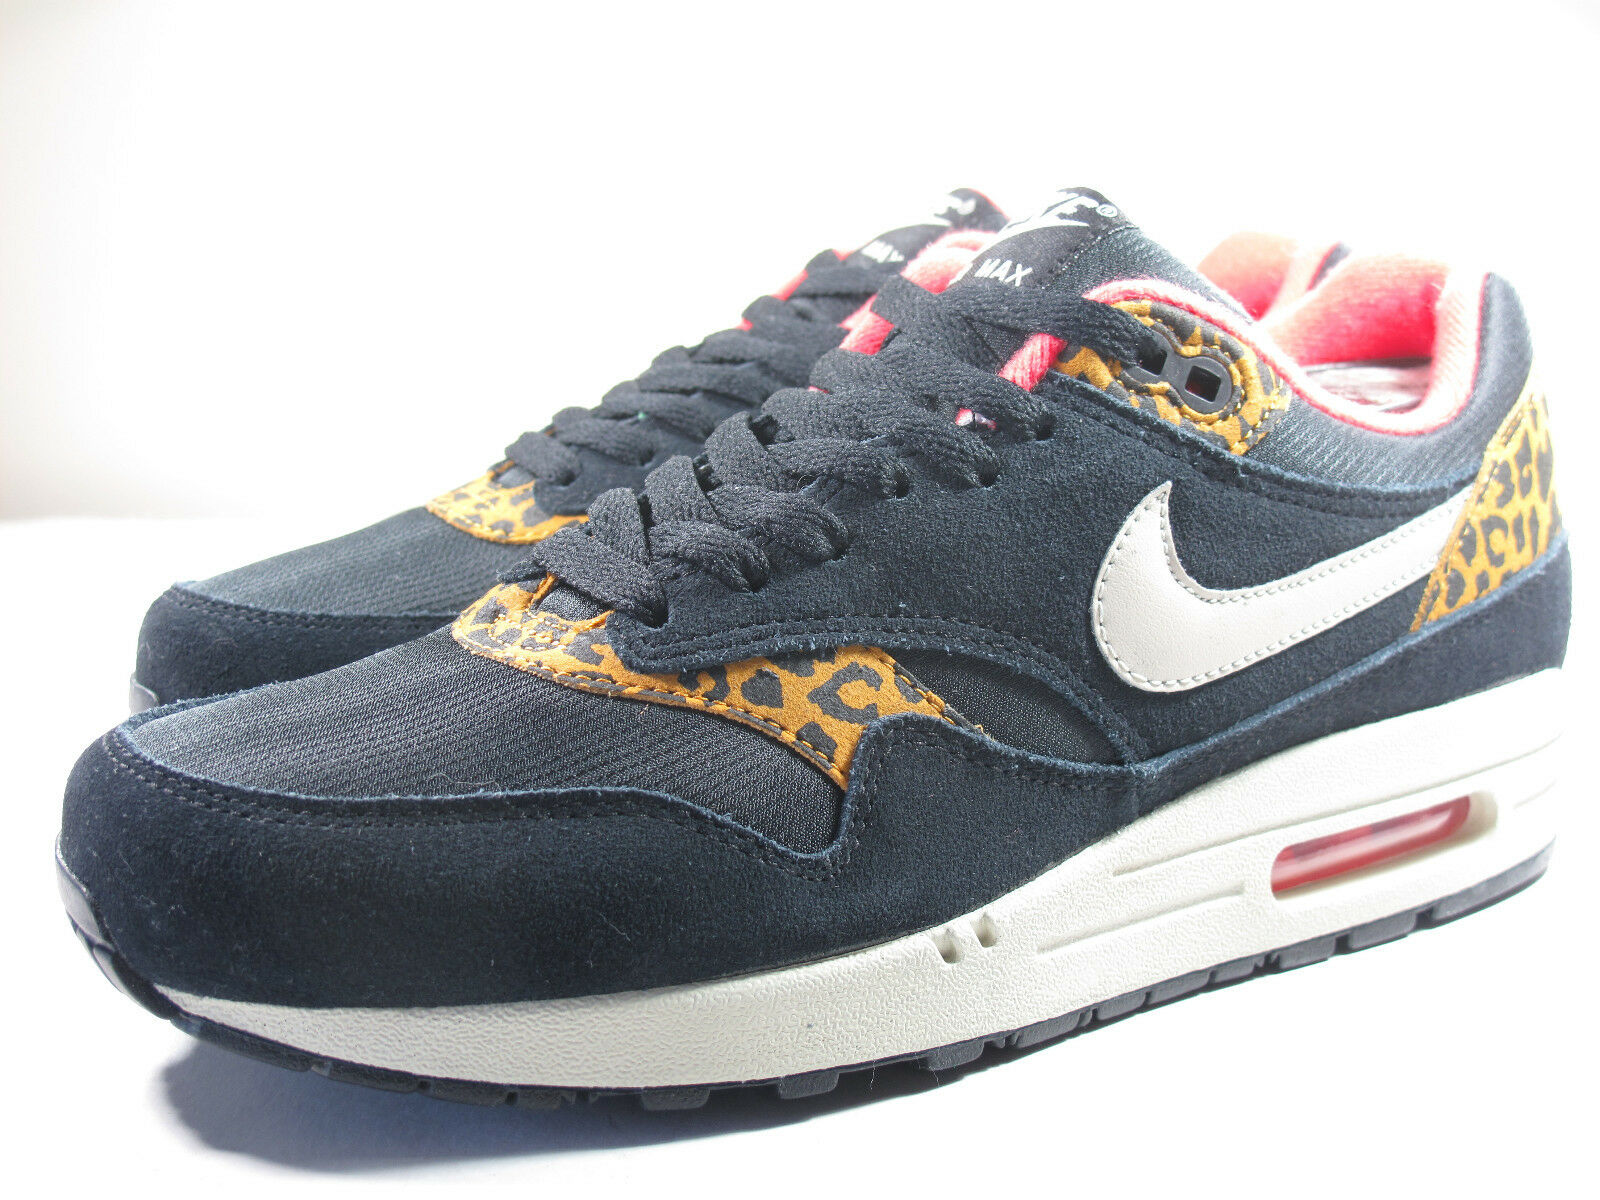 DS NIKE 2012 AIR MAX 1 BLACK LEOPARD M 8  W 9.5 ATMOS PATTA CAMP 180 90 95 93